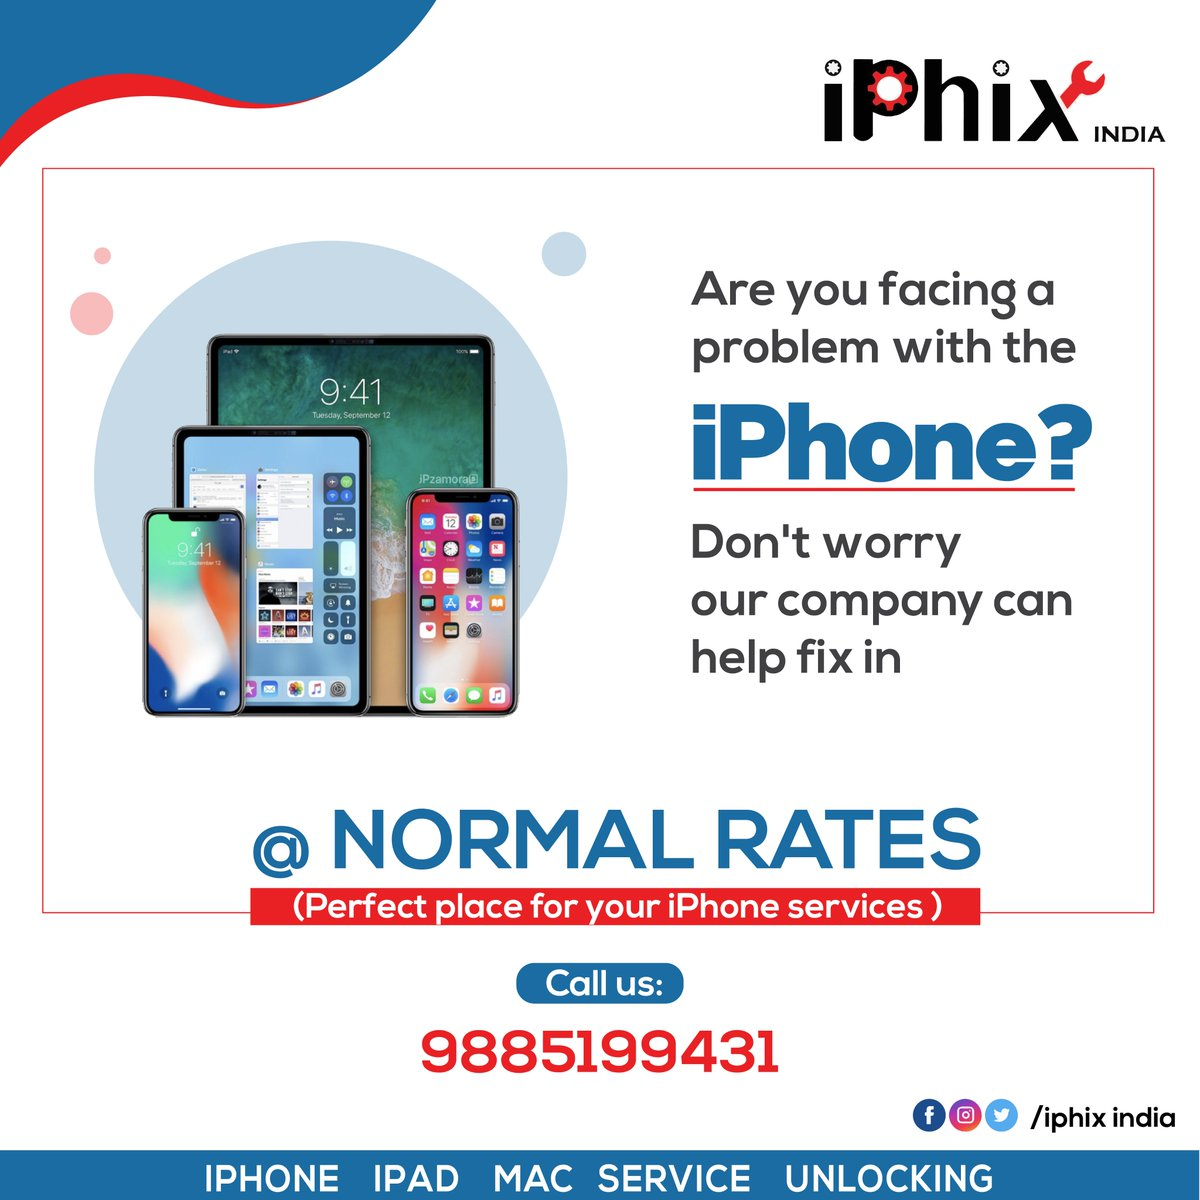 Looking for iPhone Service in #Hyderabad ? Here at IPHIX, All models of #Apple #iPhones are repaired at our #iPhone service center.   #appleiphone #iphone11 #iphonerepair #iphone8 #iphonepro #iphonex #iphonexsmax #iphonexs #iphonexr #iphone #services #service#Services #service https://t.co/c5h3xrTZRY